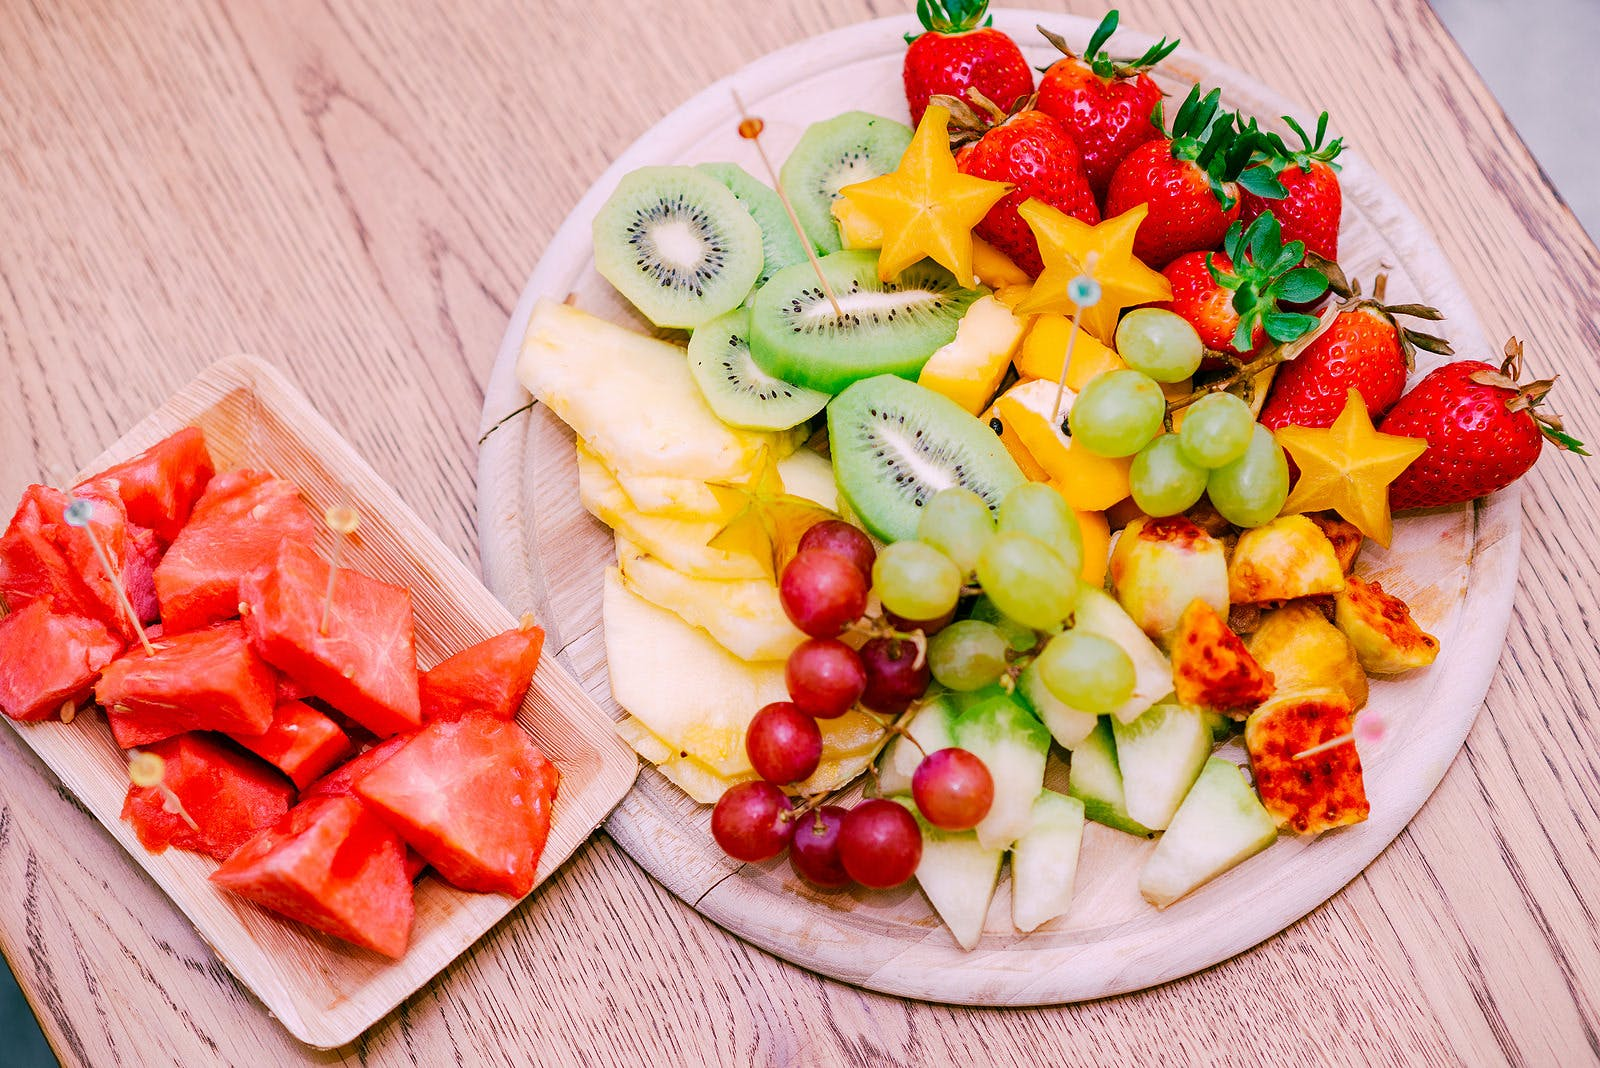 fruit platter with watermelon, grapes, kiwi, pineapple, honeydew, starfruit, strawberries could make your throat itch if you have OAS